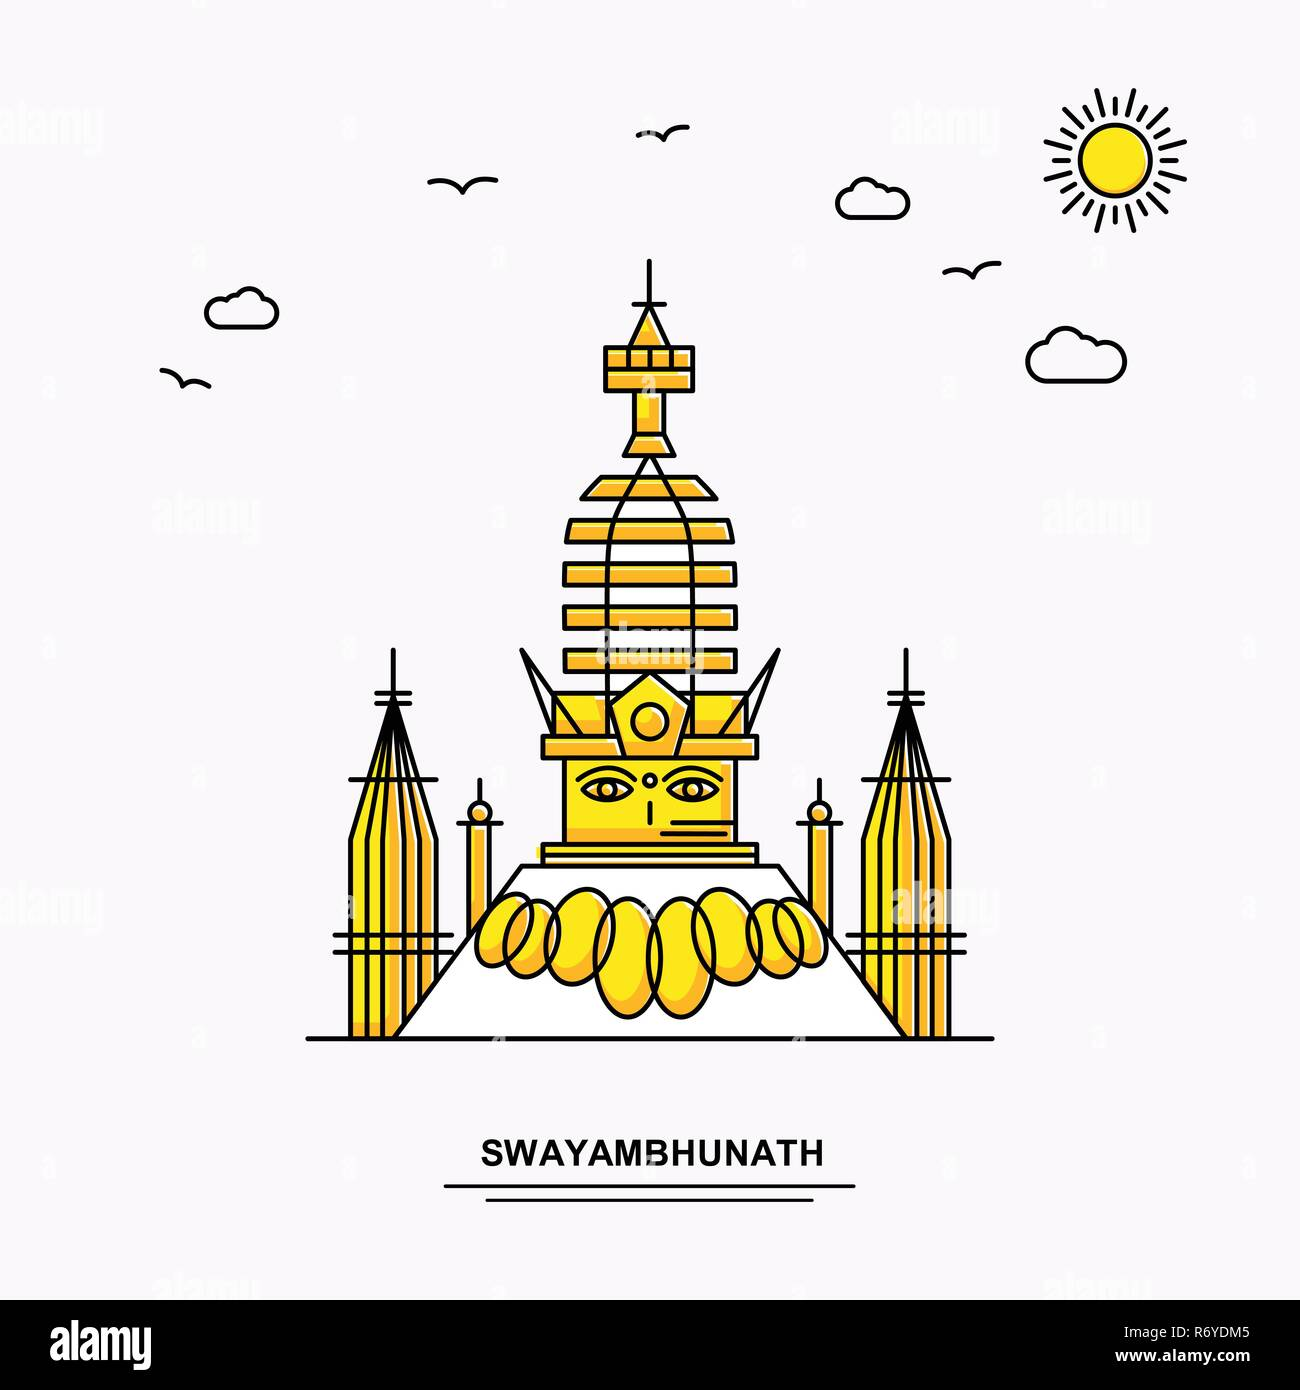 SWAYAMBHUNATH Monument Poster Template. World Travel Yellow illustration Background in Line Style with beauture nature Scene - Stock Image